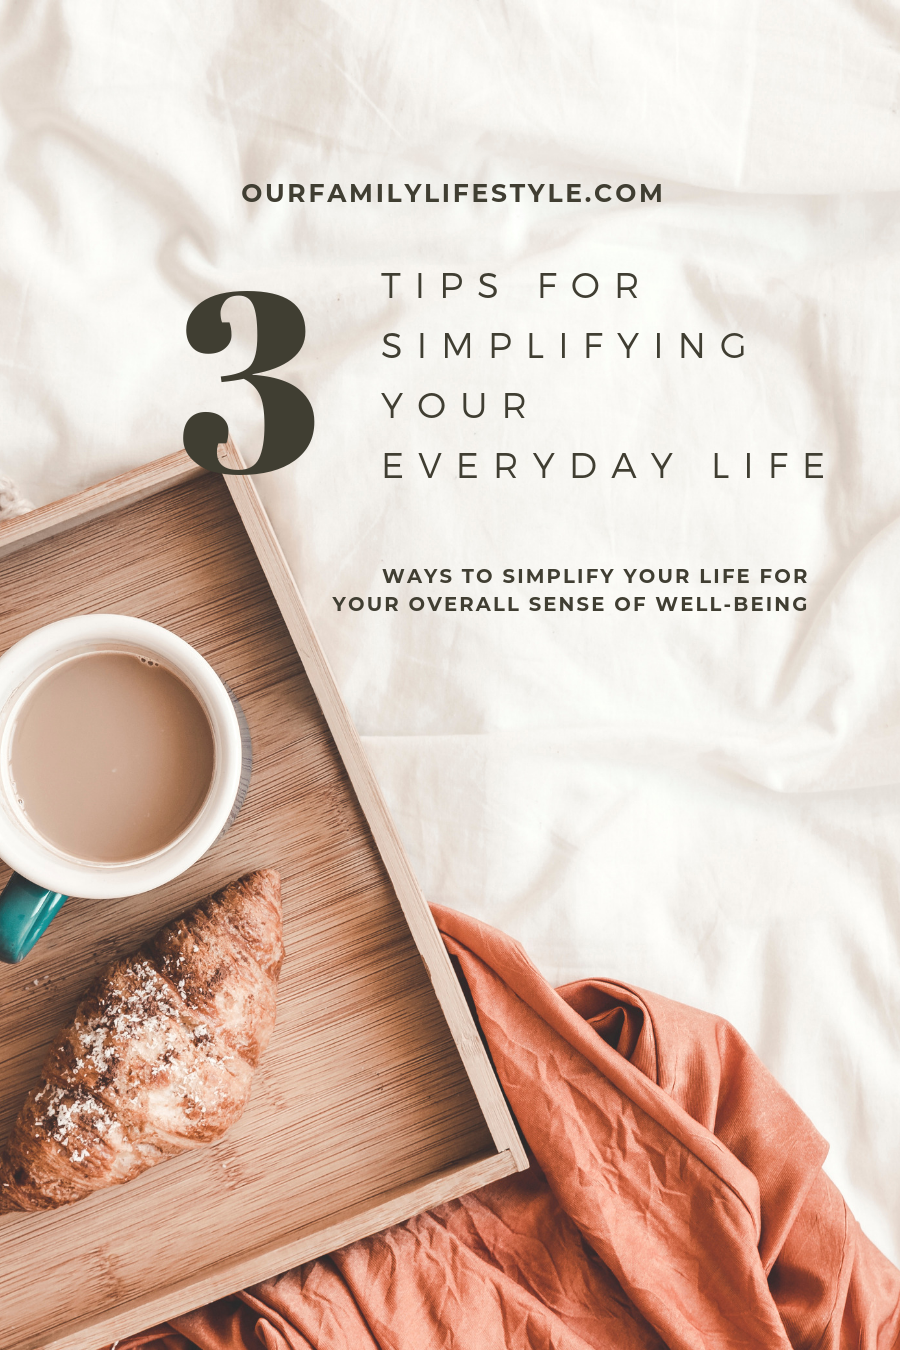 3 Tips for Simplifying Your Everyday Life